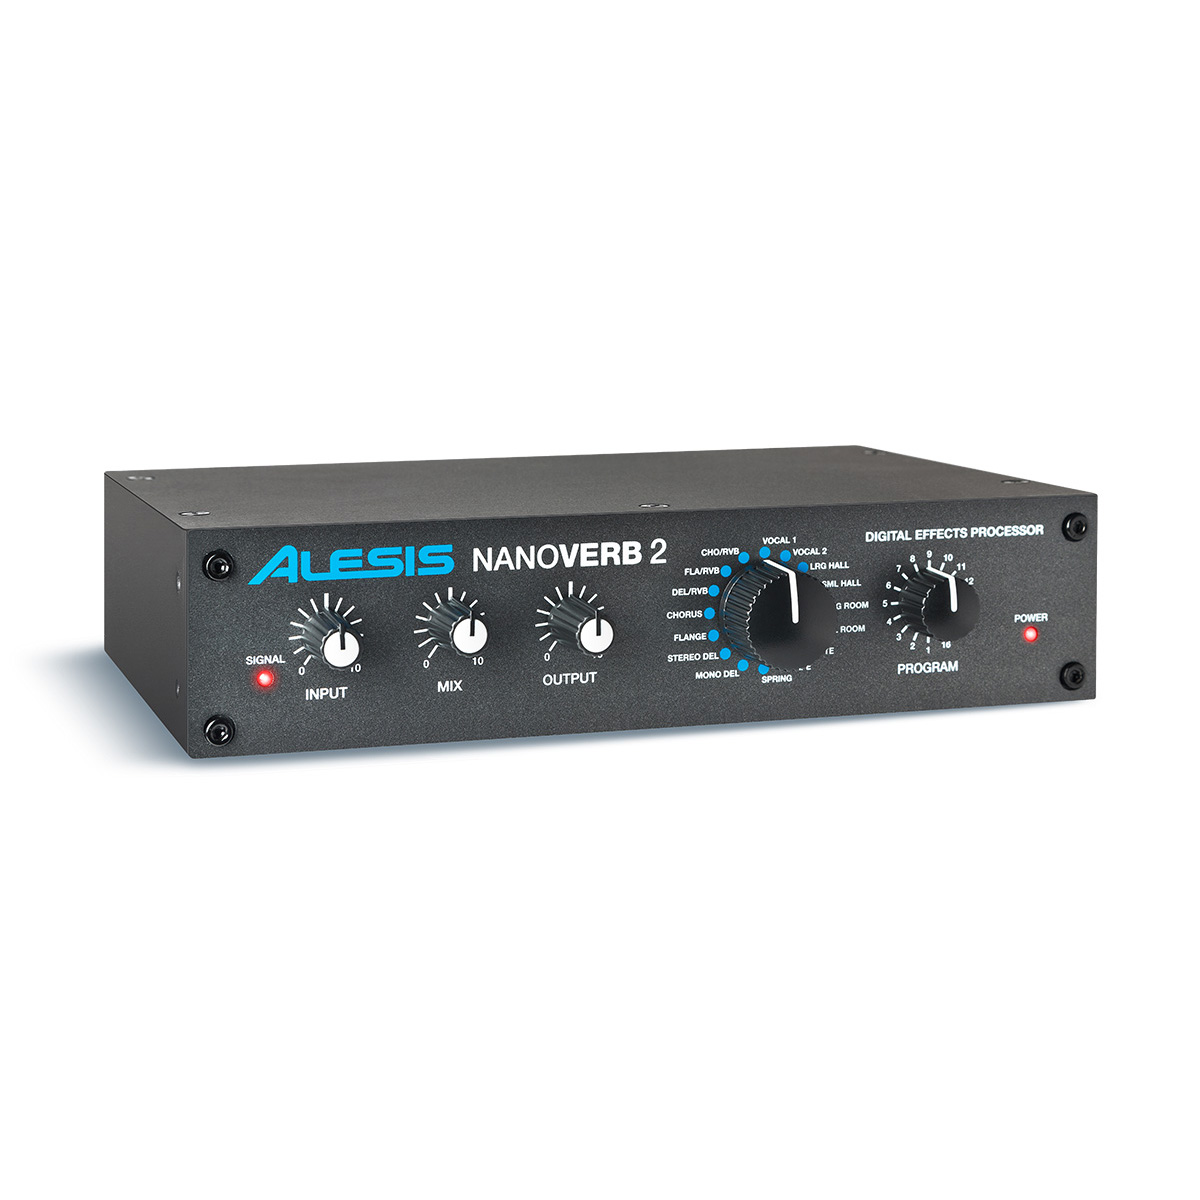 Alesis NanoVerb 2, Digital Effects Processor